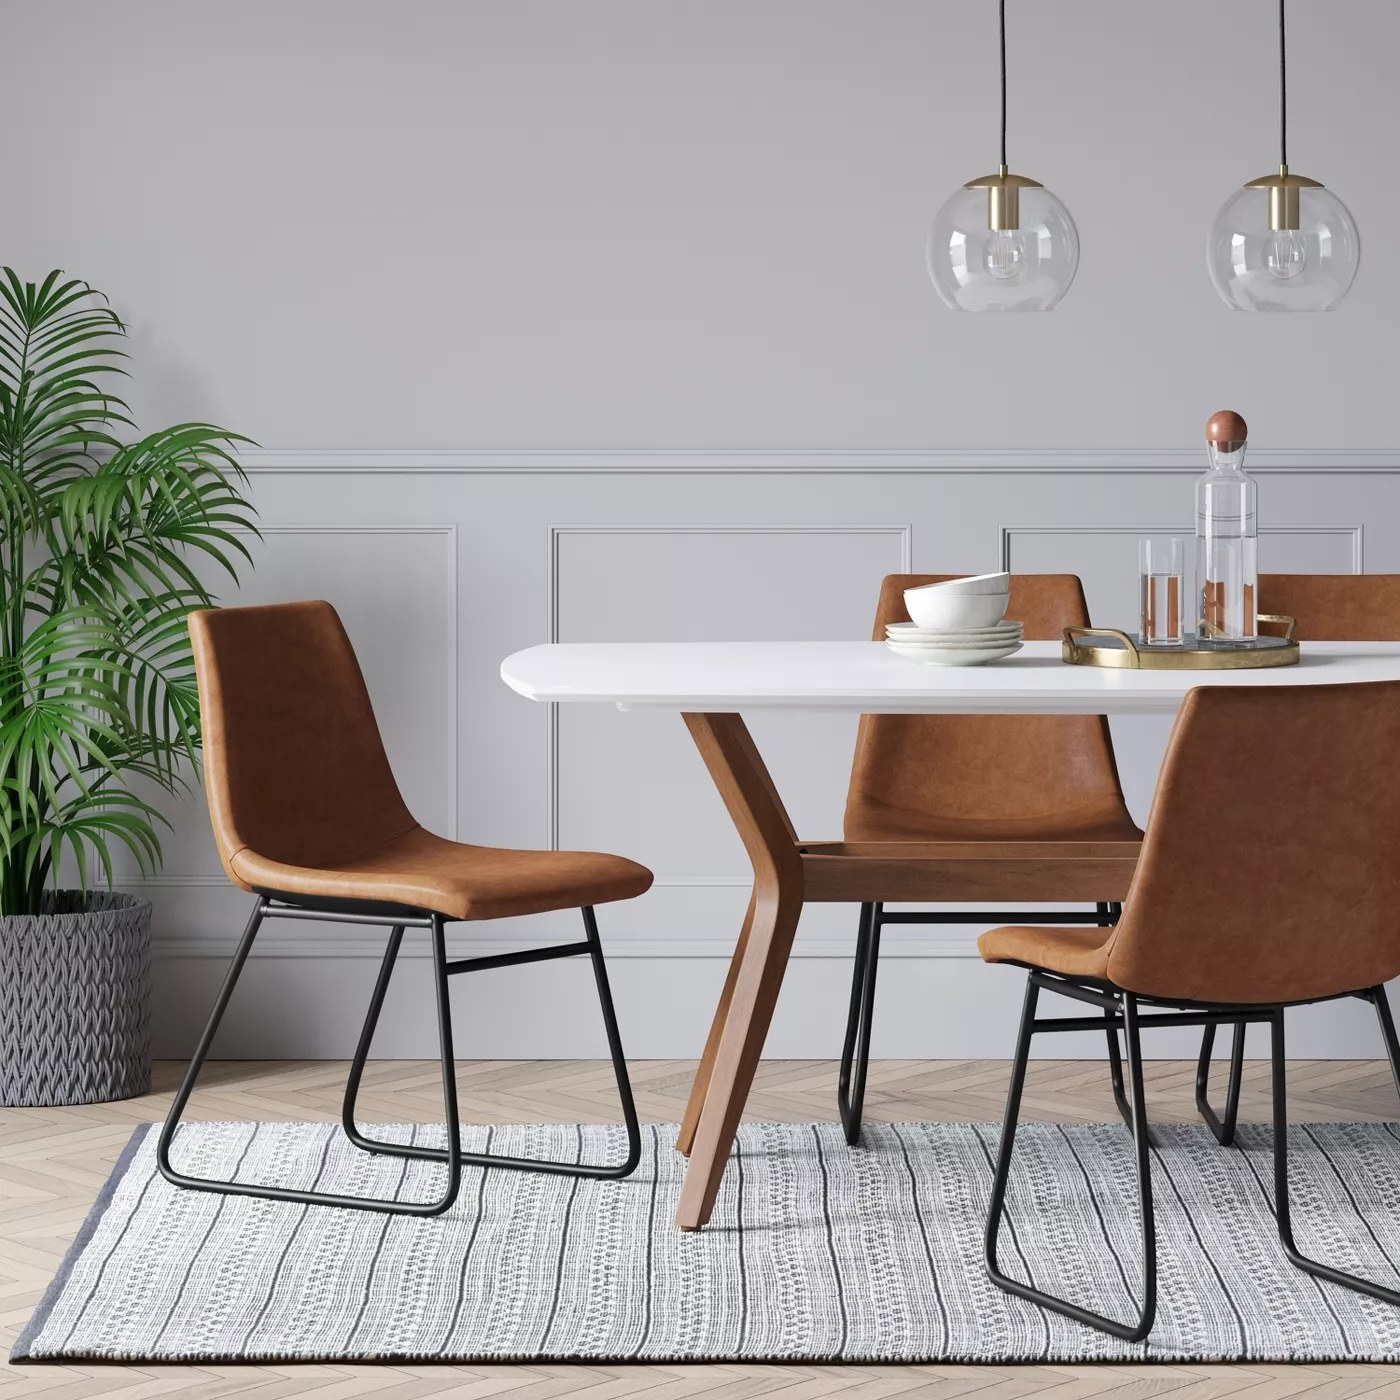 The brown chairs with black legs around a dining table